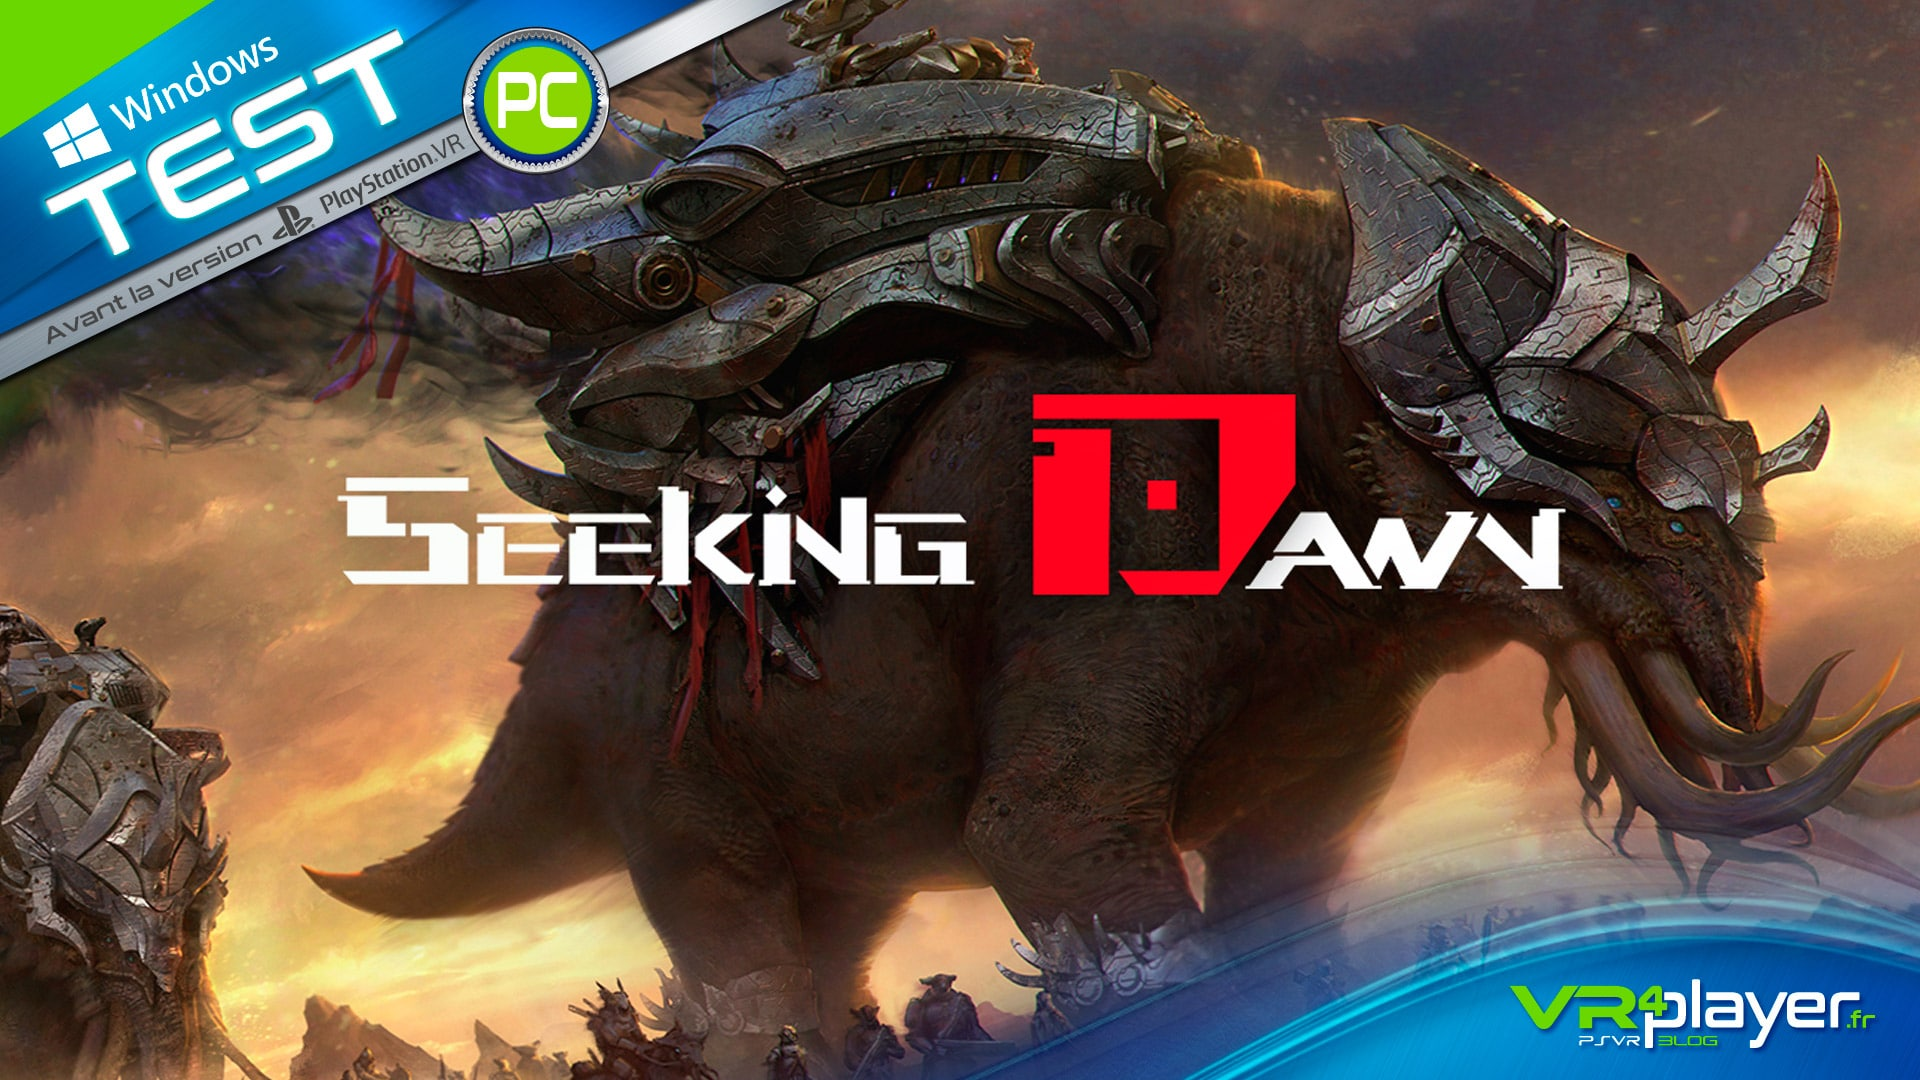 Seeking Dawn Test Review PC HTC Vive, Oculus Rift, Windows Mixed Reality, VR4player